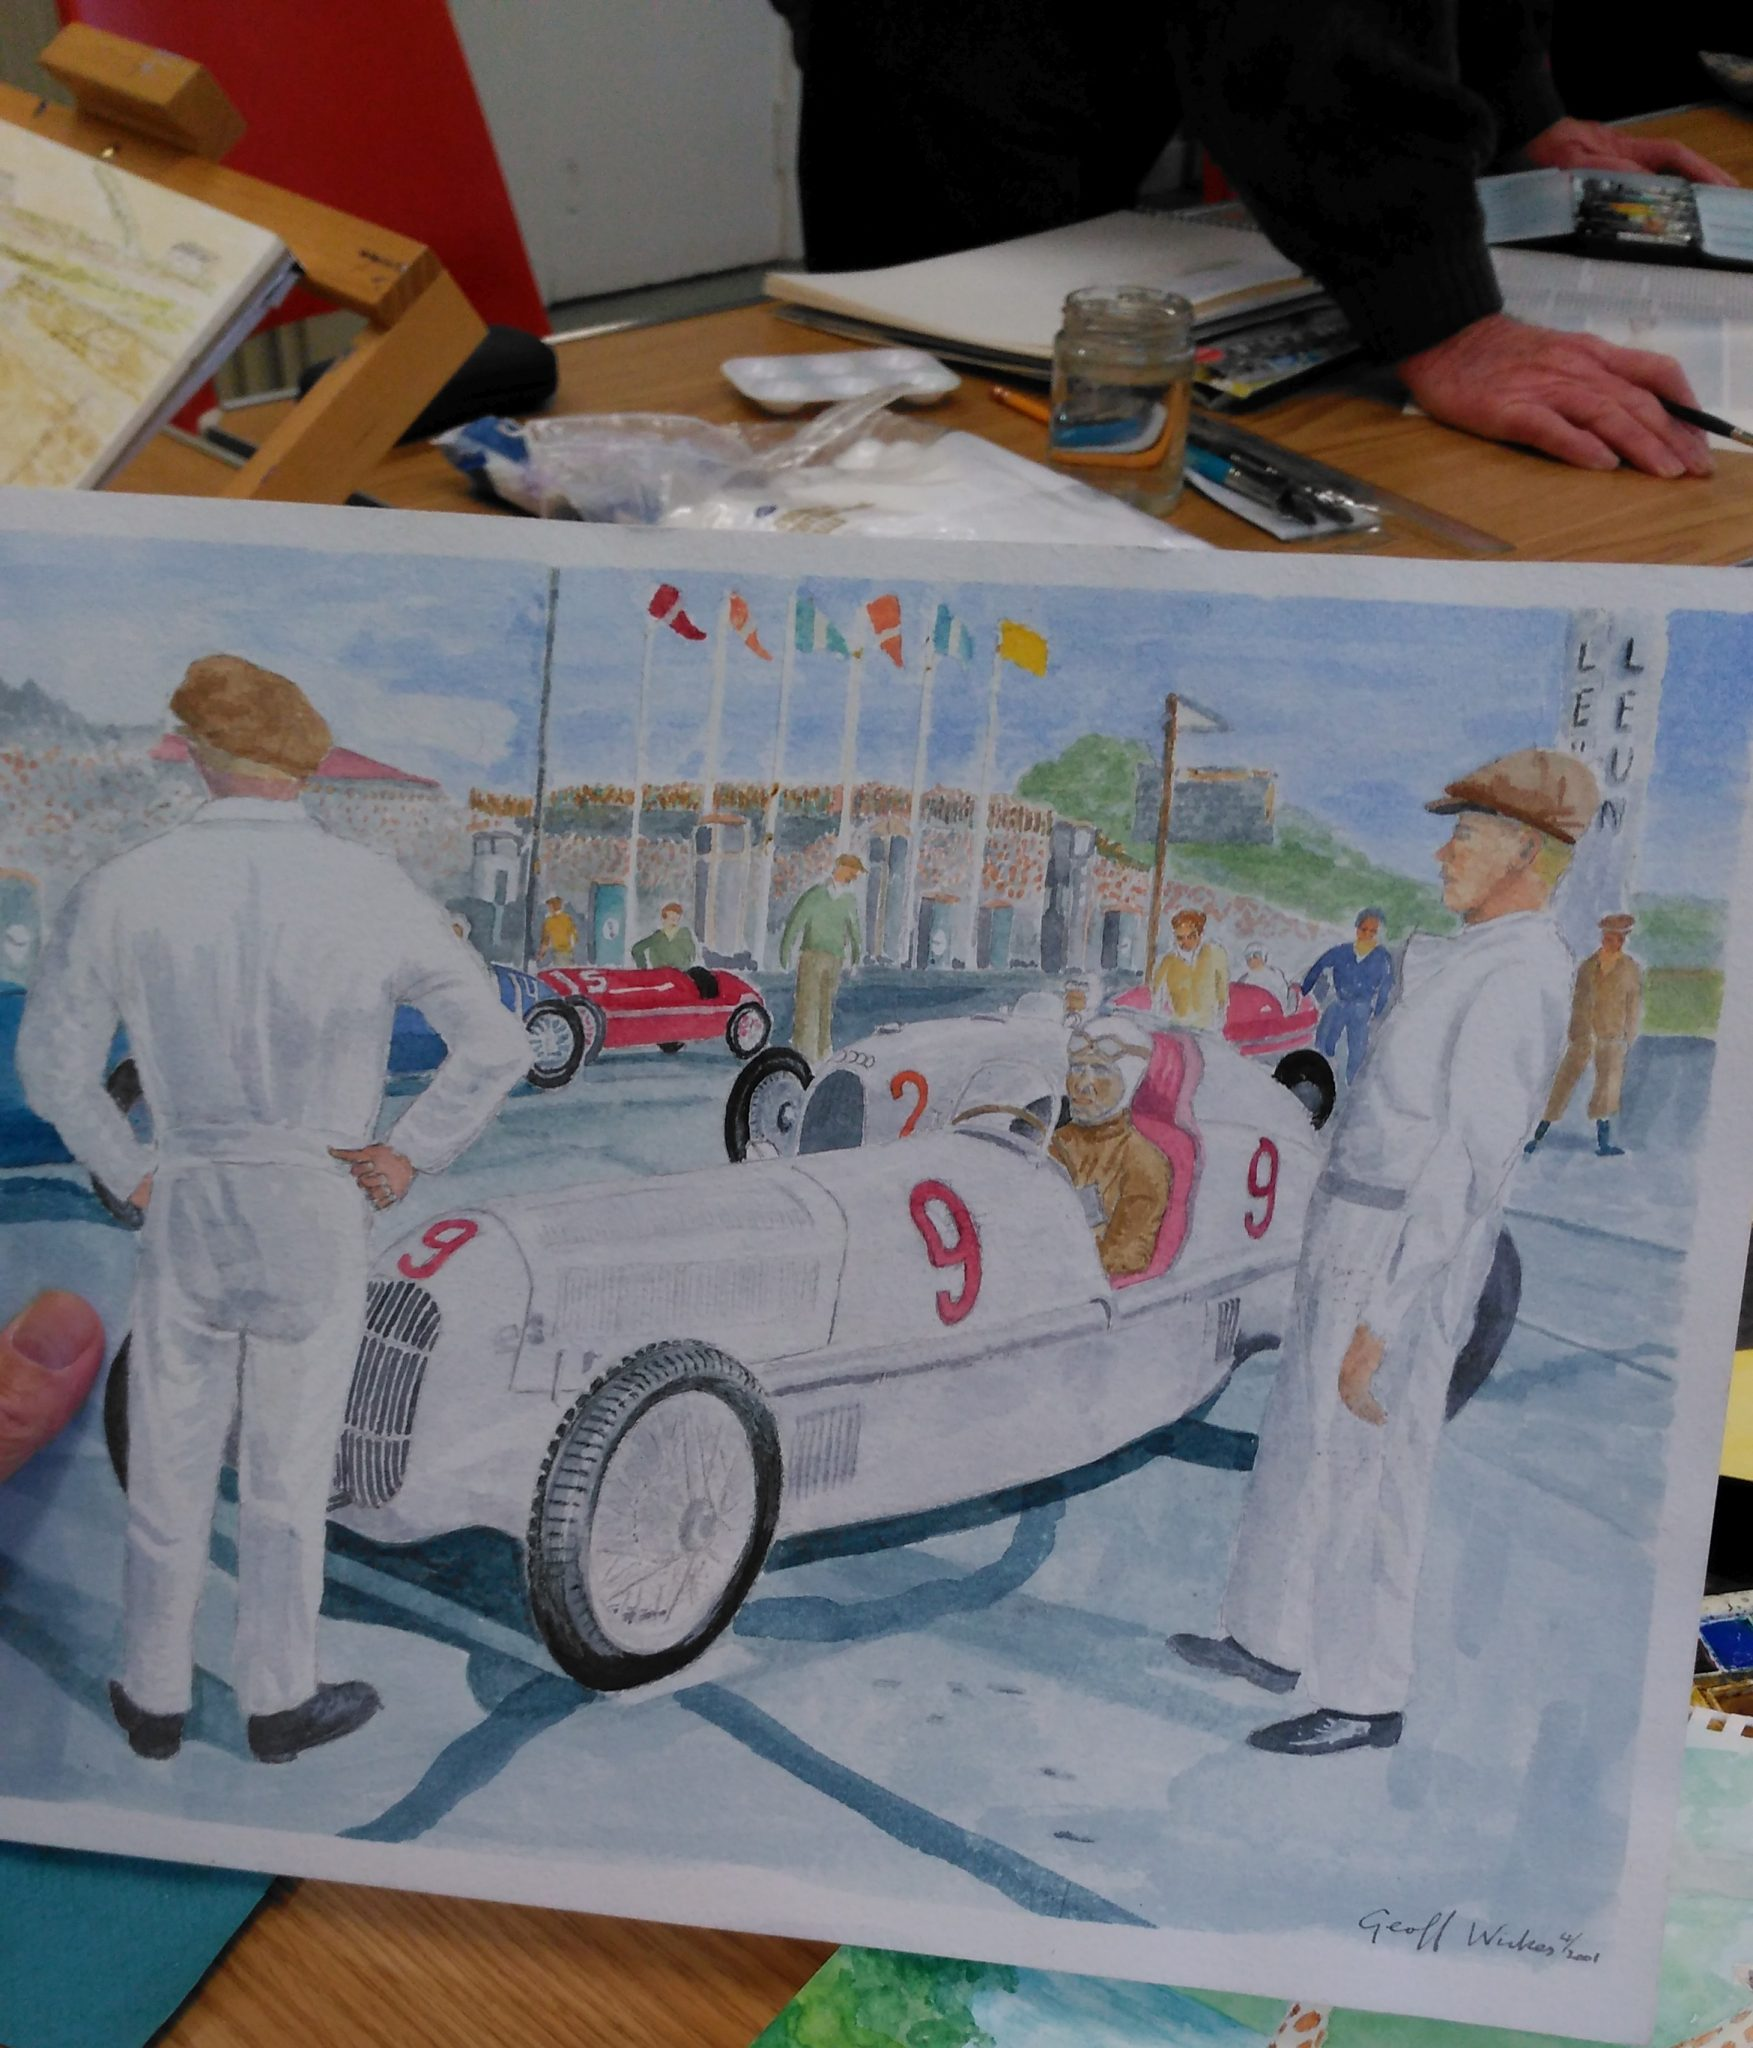 Painting of a racing car.